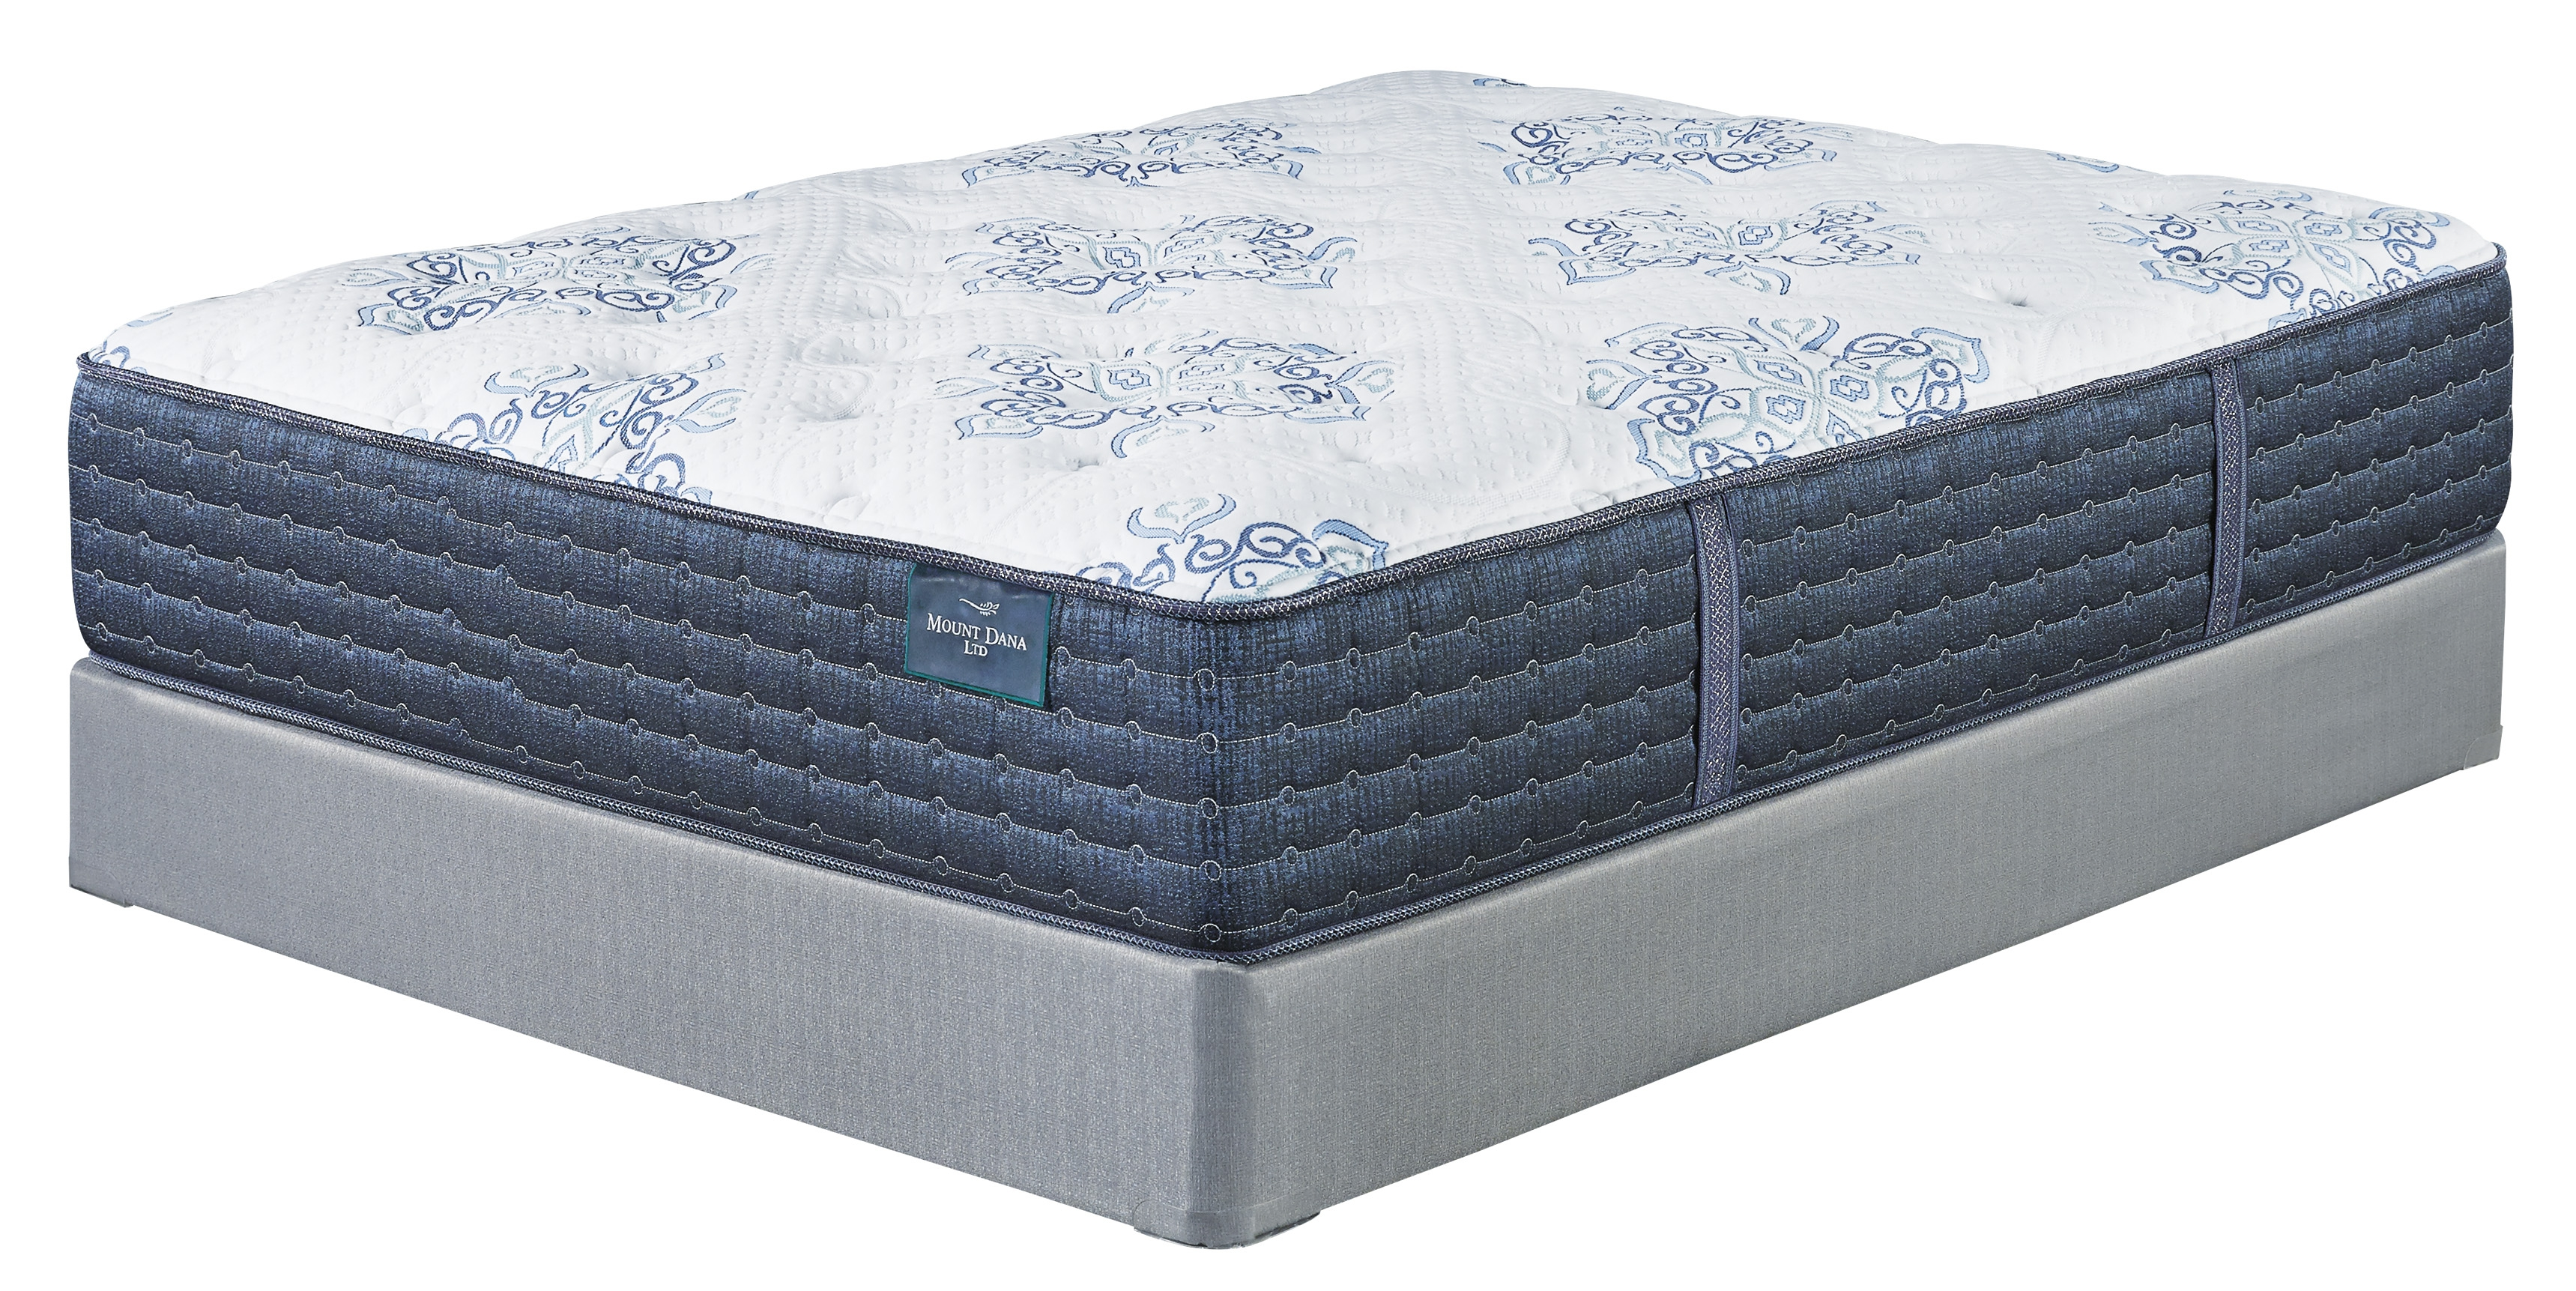 Ashley Furniture Mt Dana Firm Twin Mattress Click To Enlarge